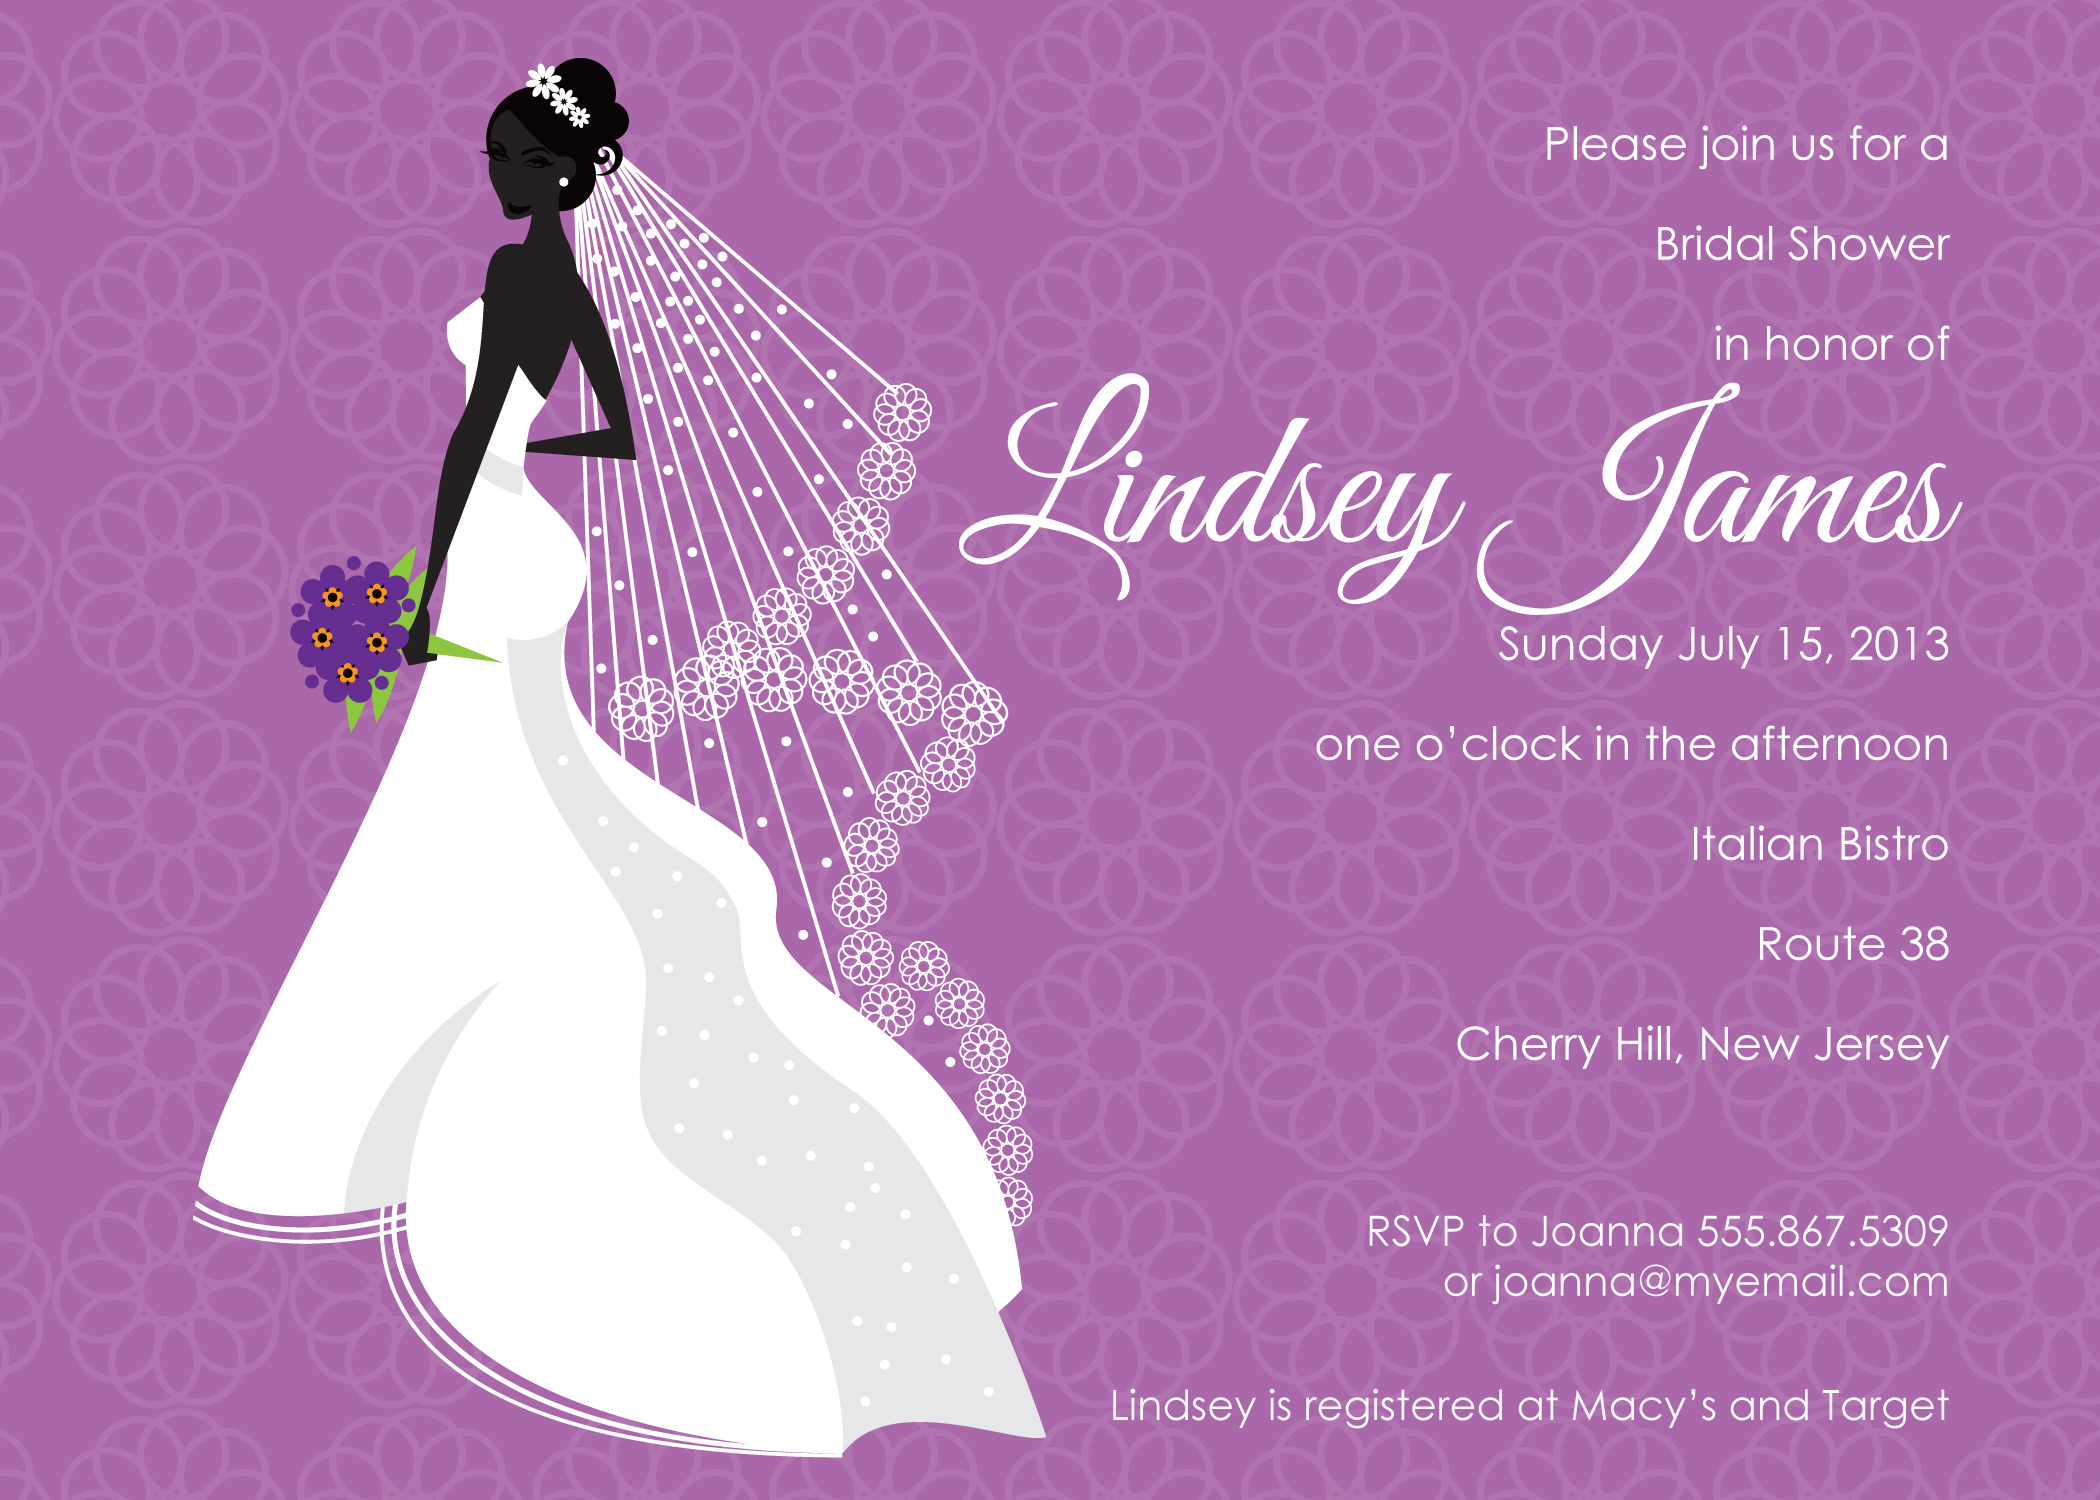 Wedding Shower Invitation Sayings: Quotes For Bridal Shower Invitations. QuotesGram